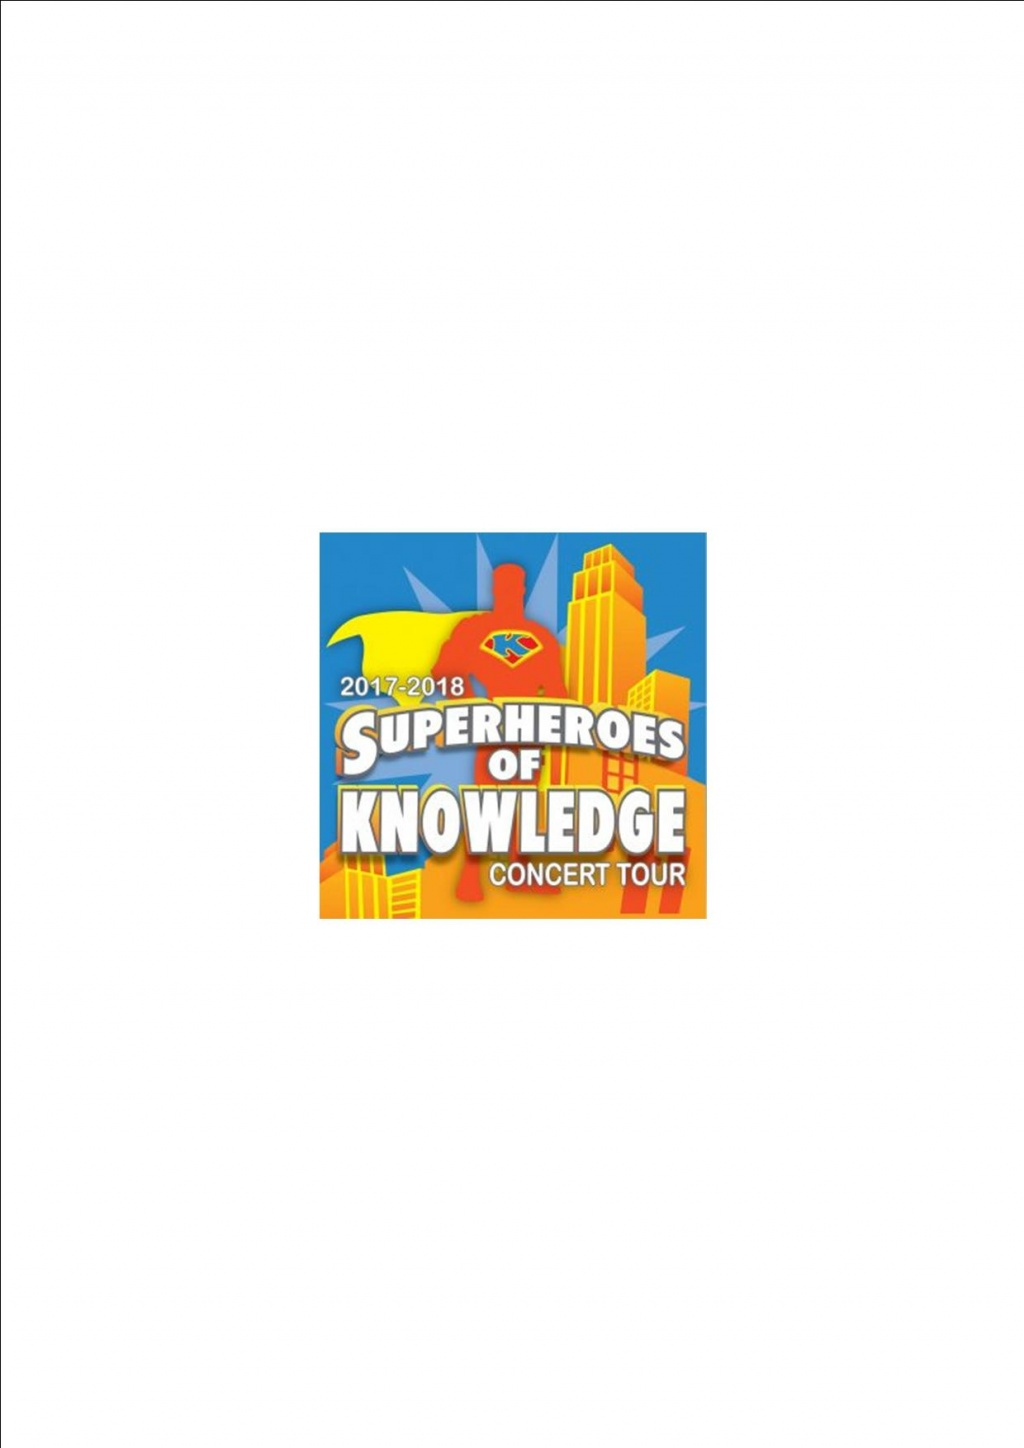 Superheroes of Knowledge